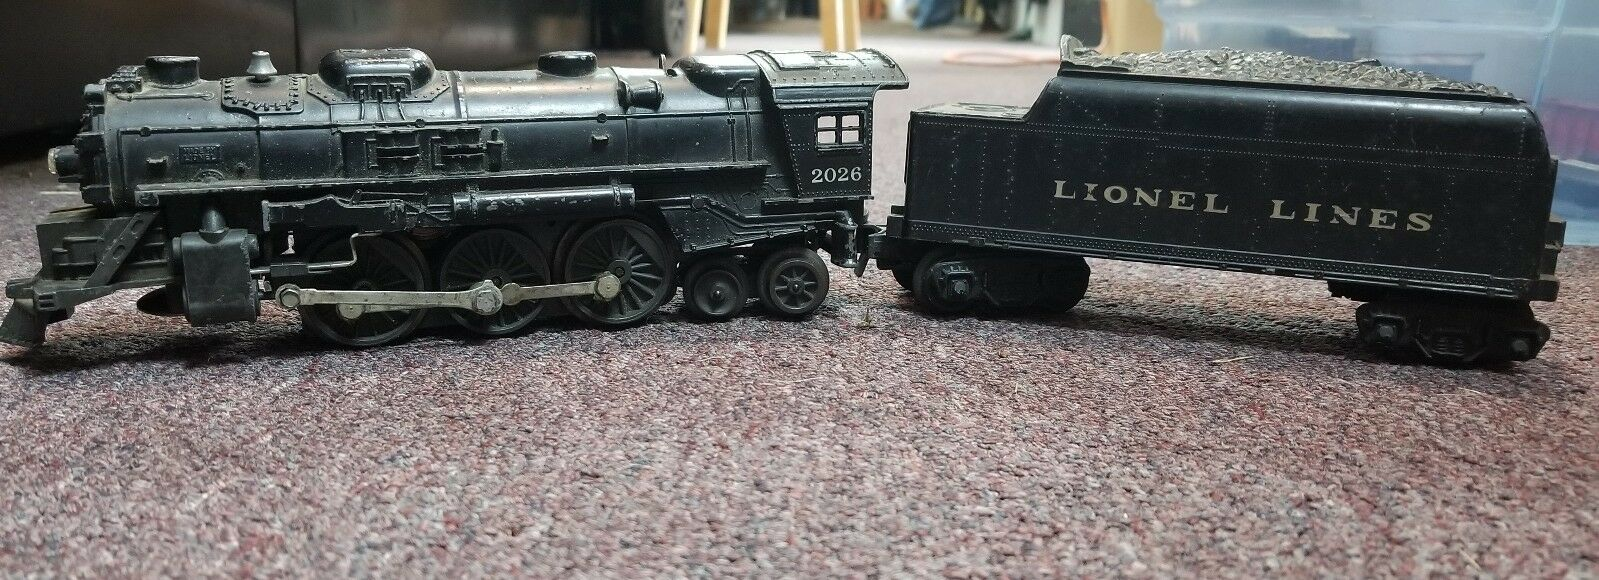 Lionel 2026 Steam Engine With Coal Car b-z